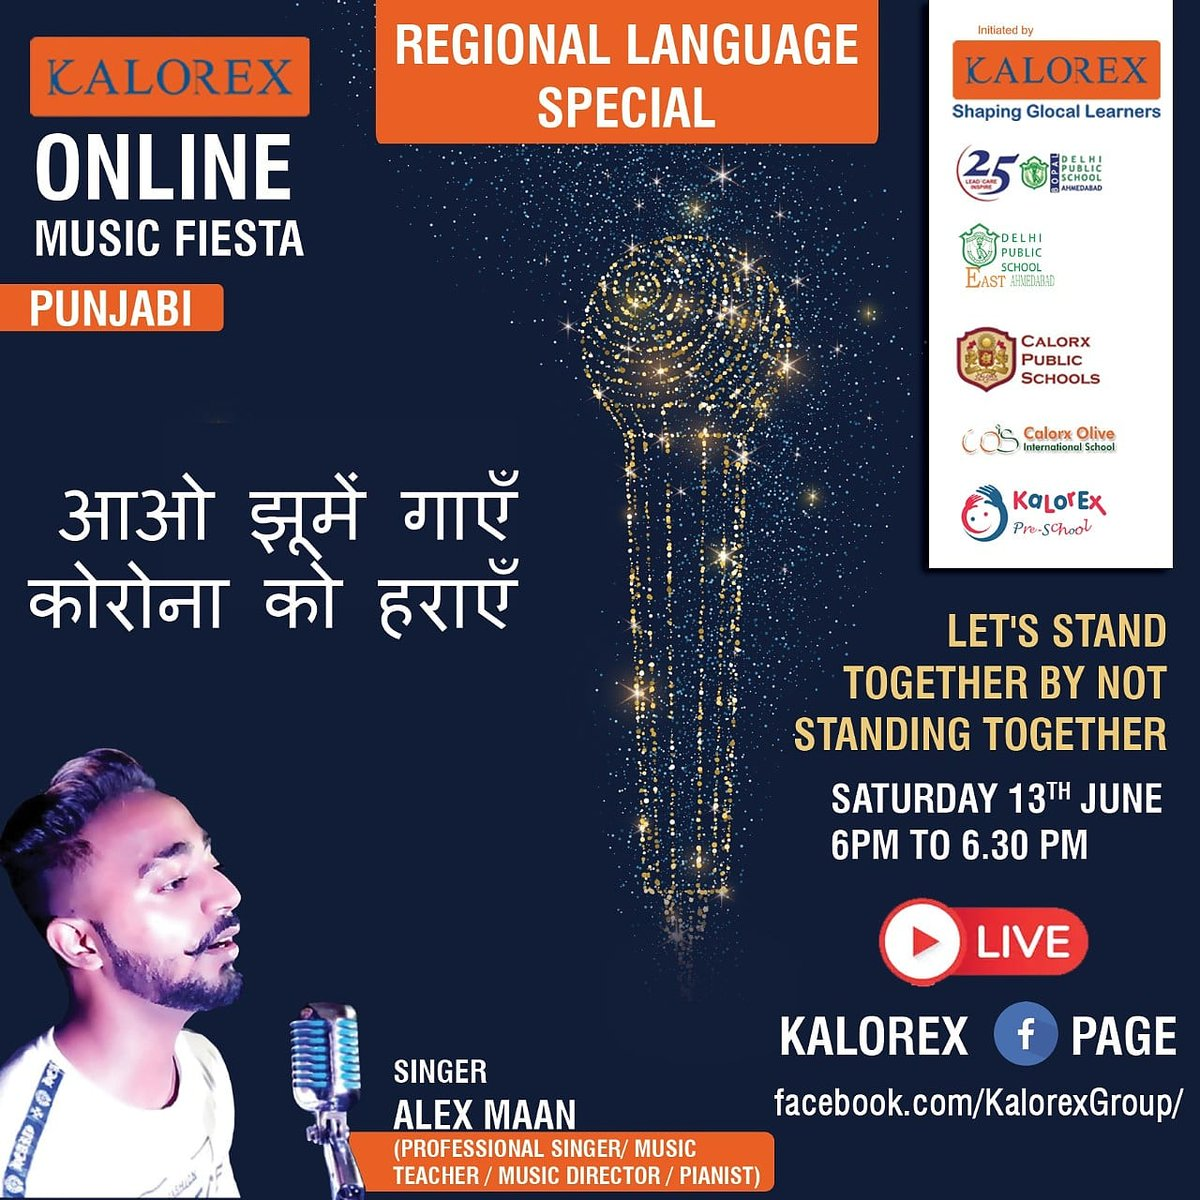 KOMF Regional (part 1) bring to you the next singer from Punjab. Alex is his Pseudonym.  His orthonym is Maninder Maan, a Delhi based young artist building his career as a pianist and professional singer.   #KOMF #Kalorex #Regionallanguagespecial #Saturday13thJune #6pmFBlive https://t.co/DIgY6MMx4d